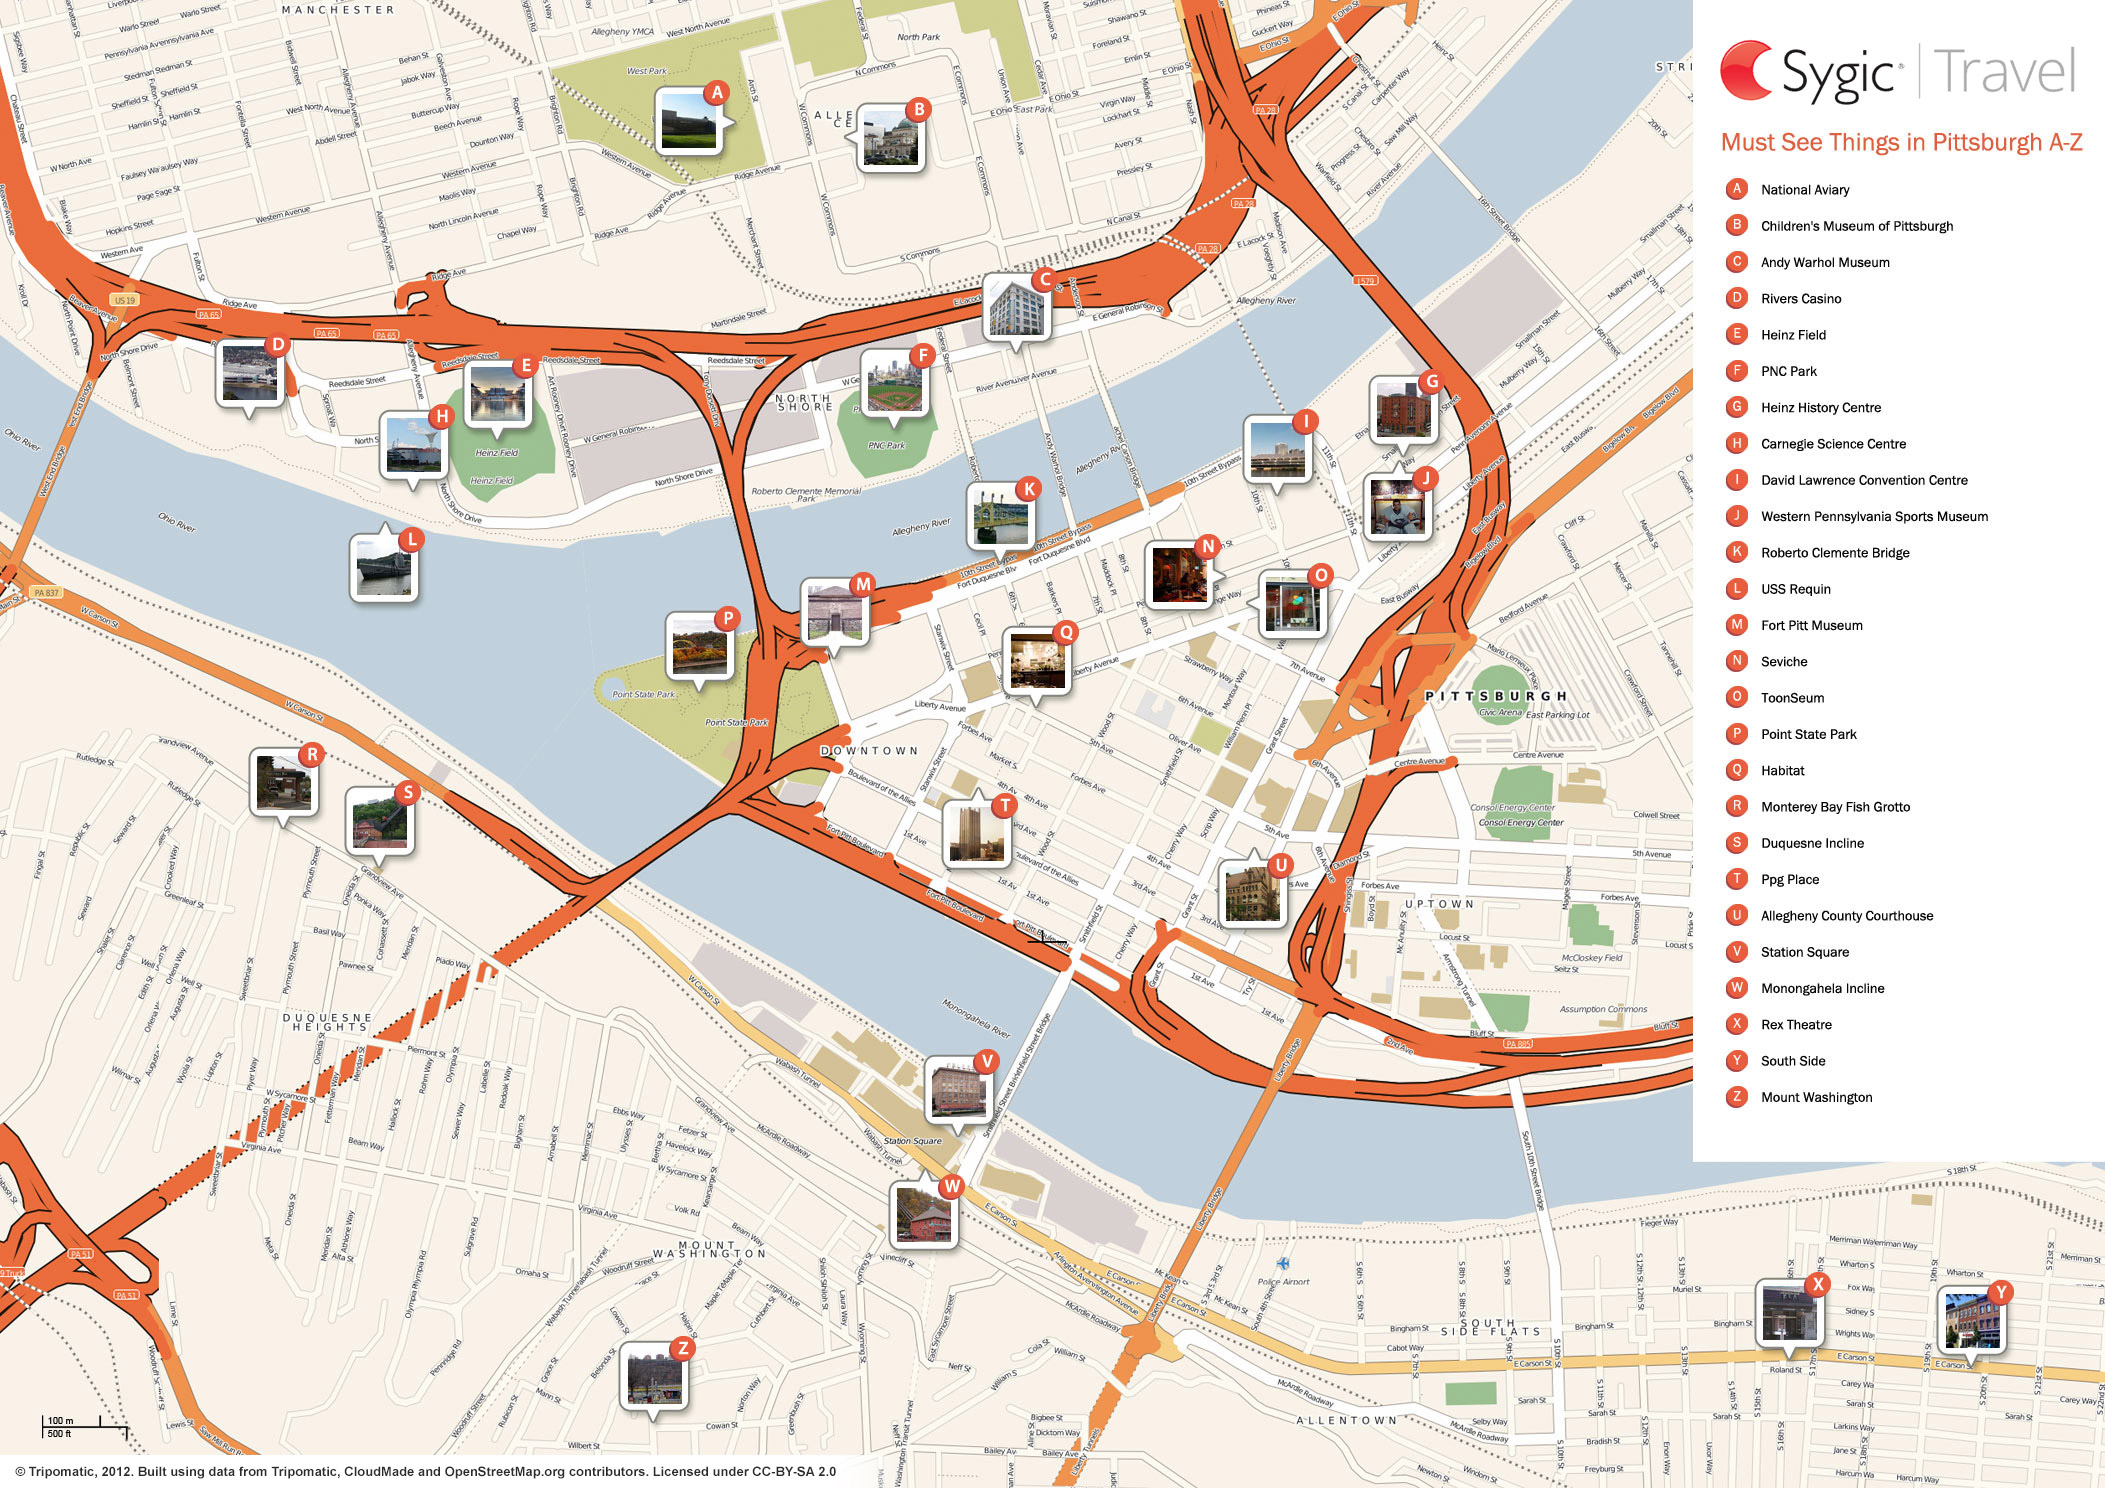 Map Of Pittsburgh Attractions  Sygic Travel